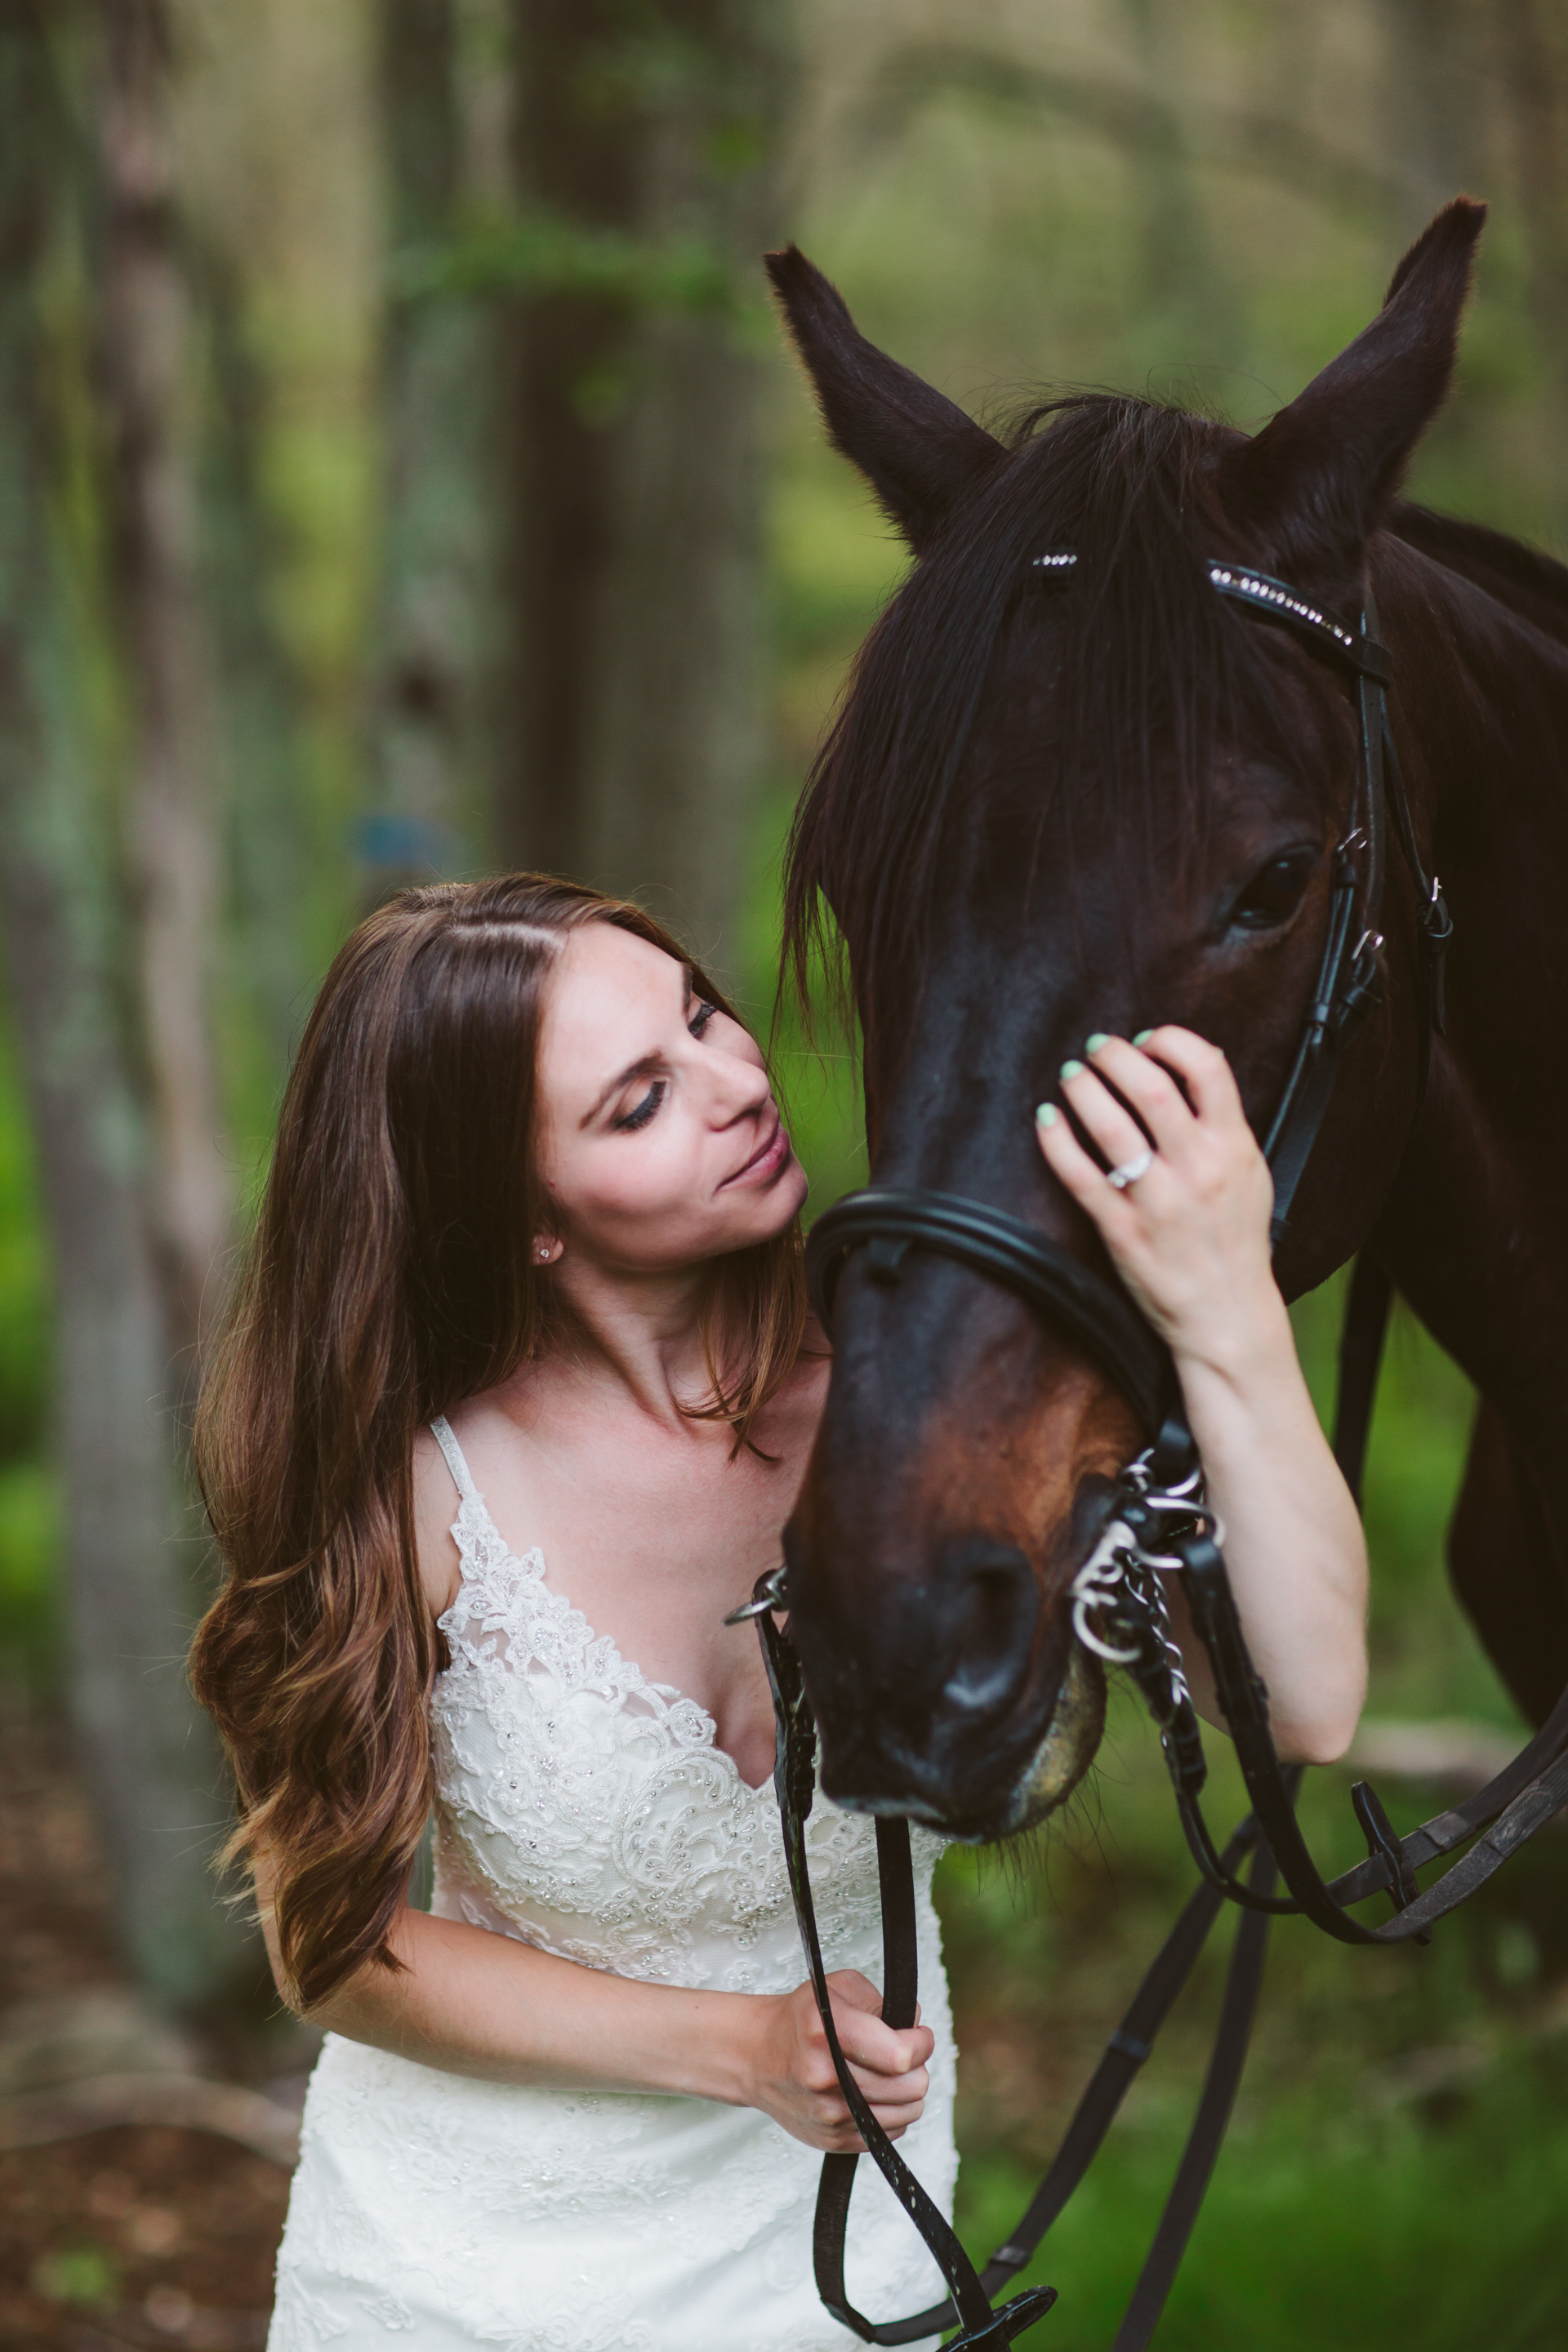 Photographybyamandamorgan-horse-wedding-bride-5.jpg